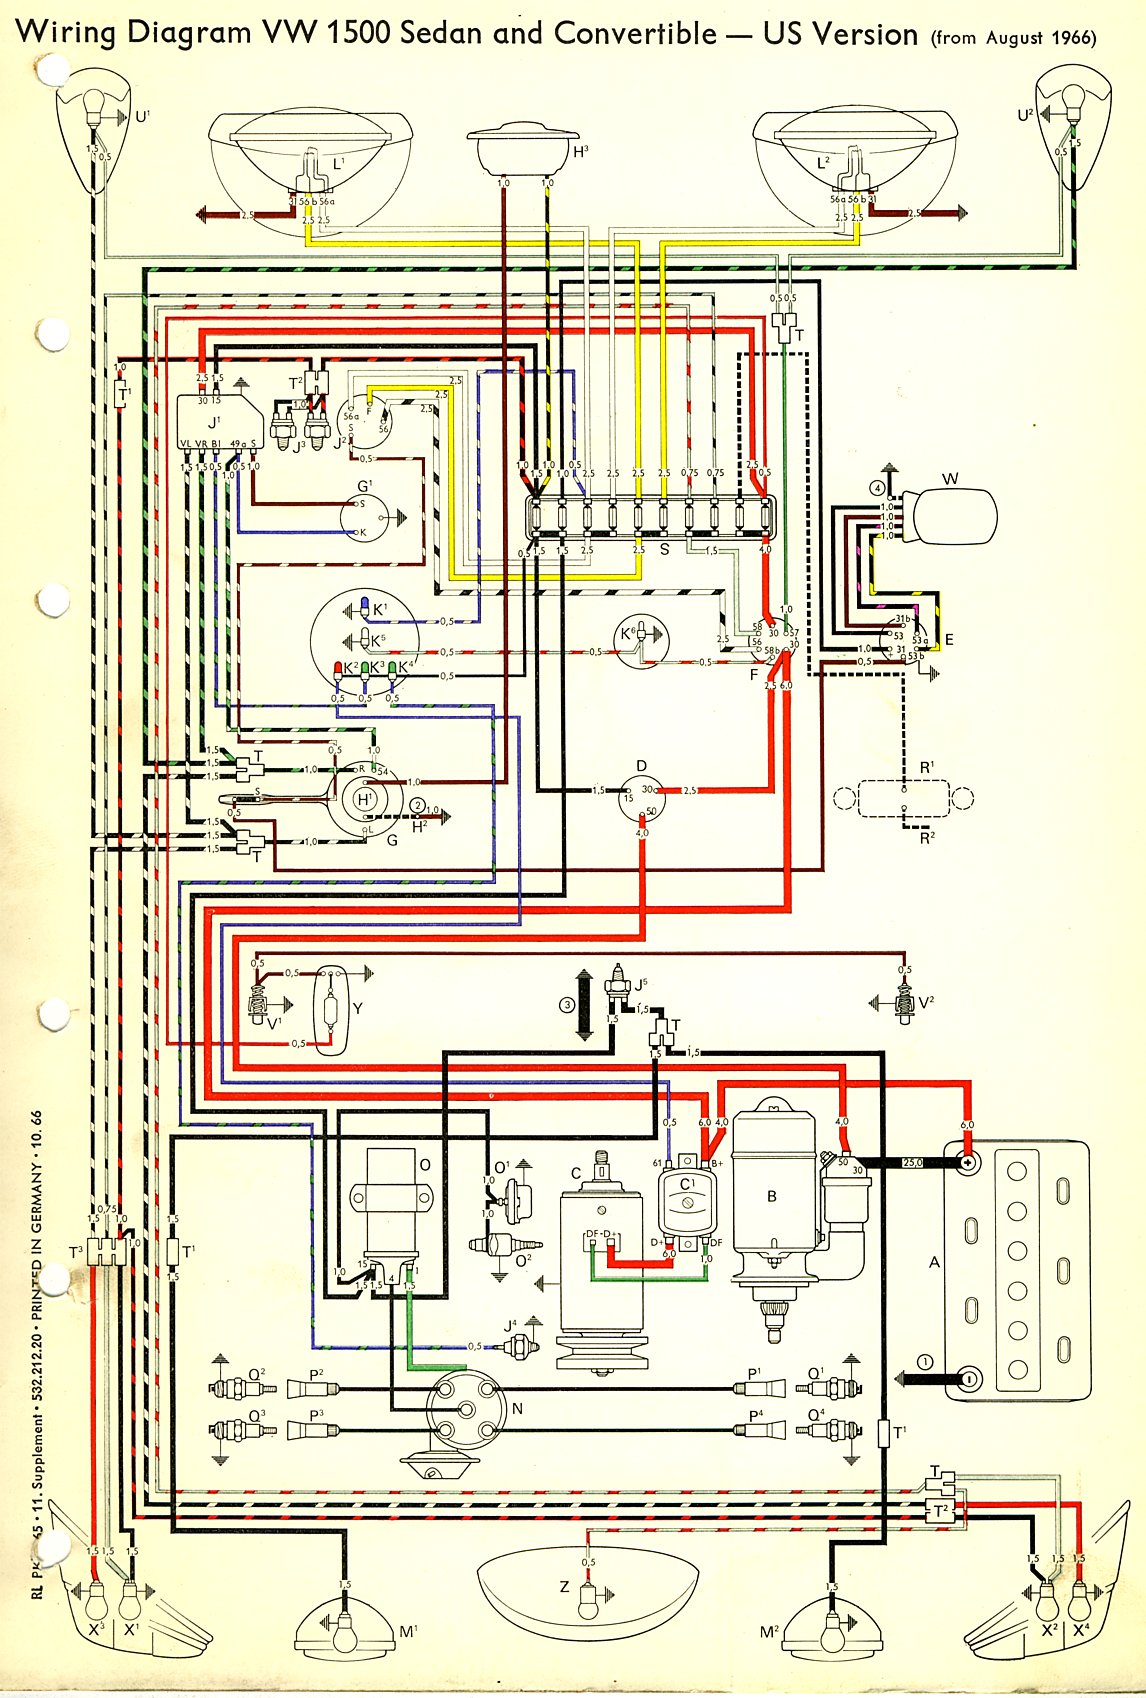 Volkswagen Wiring Diagram: TheSamba.com :: Type 1 Wiring Diagrams,Design